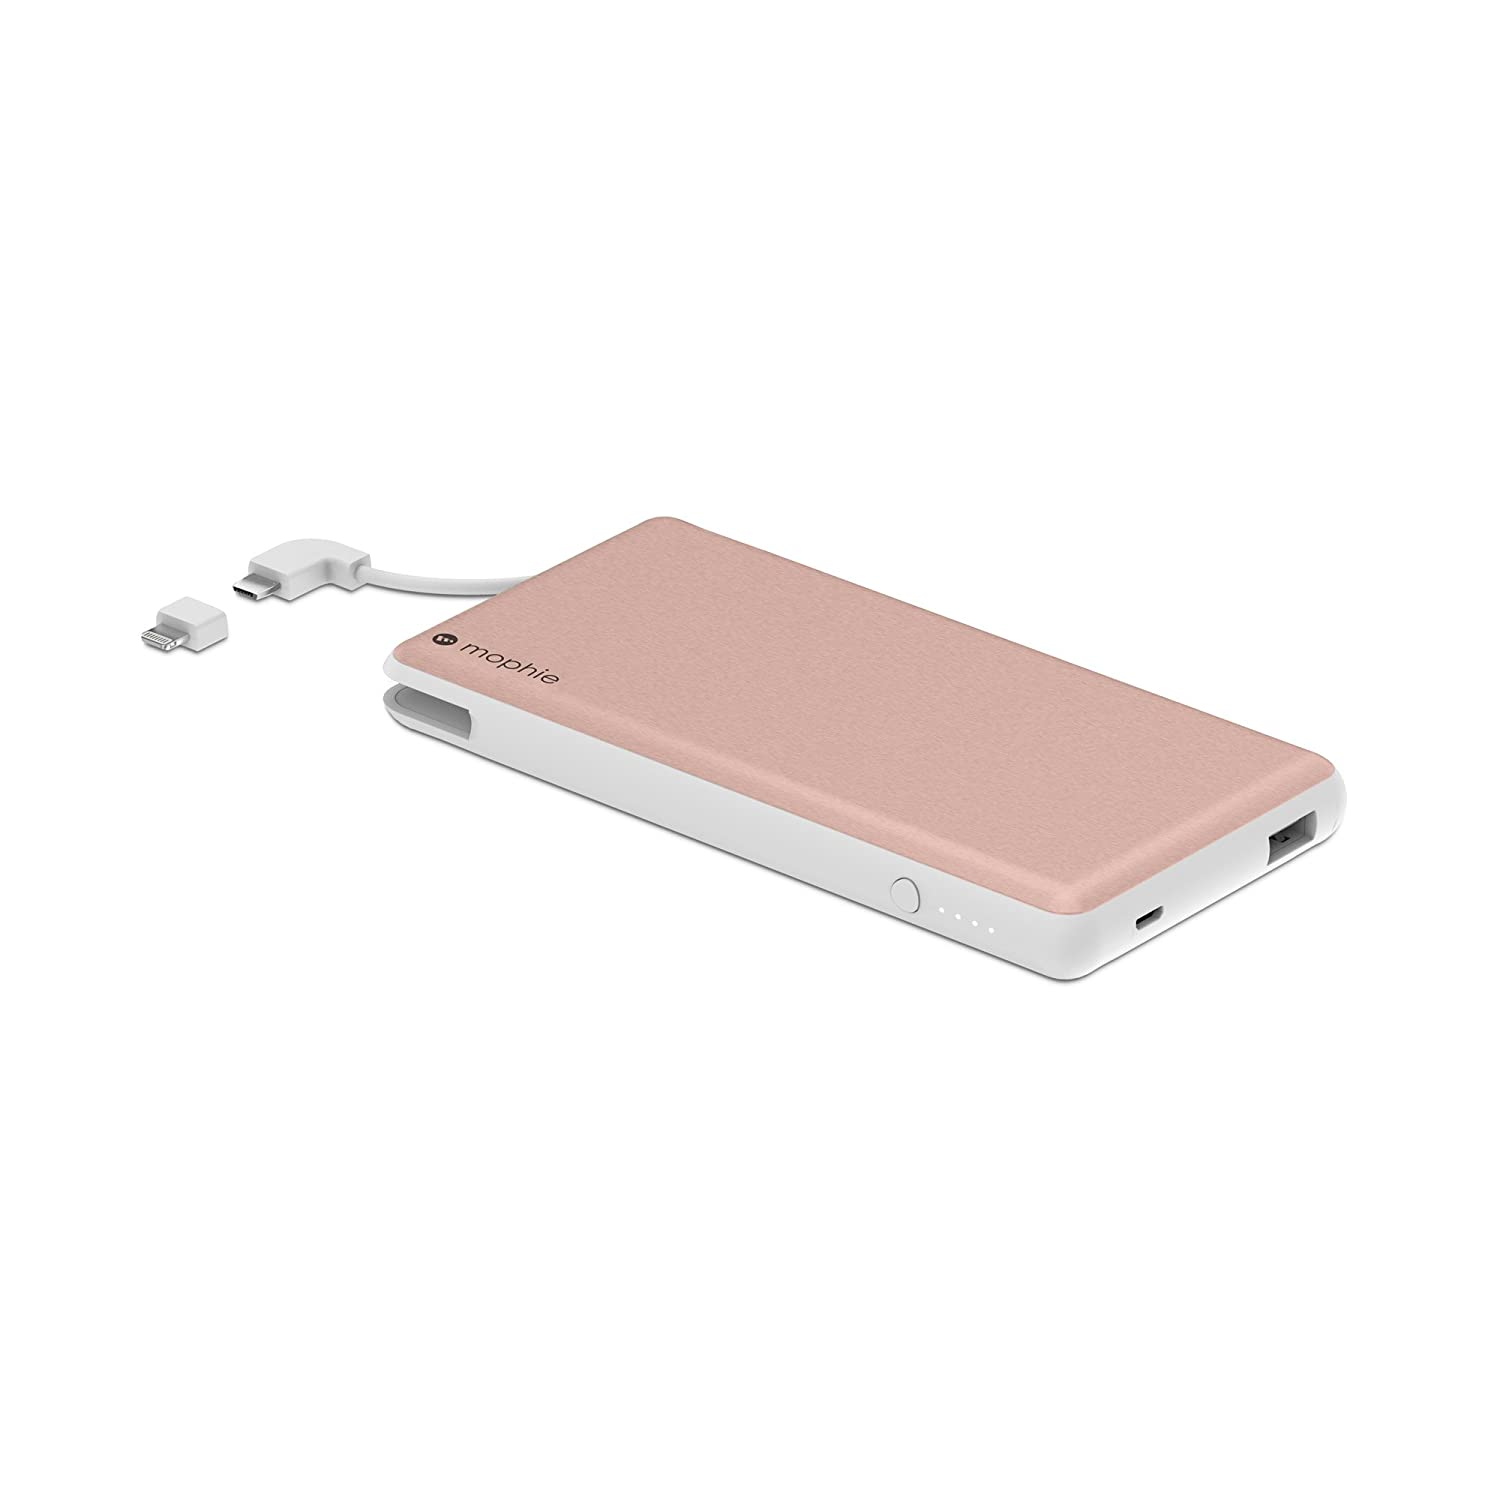 sneakers for cheap 70543 6c27f mophie powerstation Plus XL External Battery with Built in Cables for  Smartphones and Tablets (12,000mAh) - Rose Gold